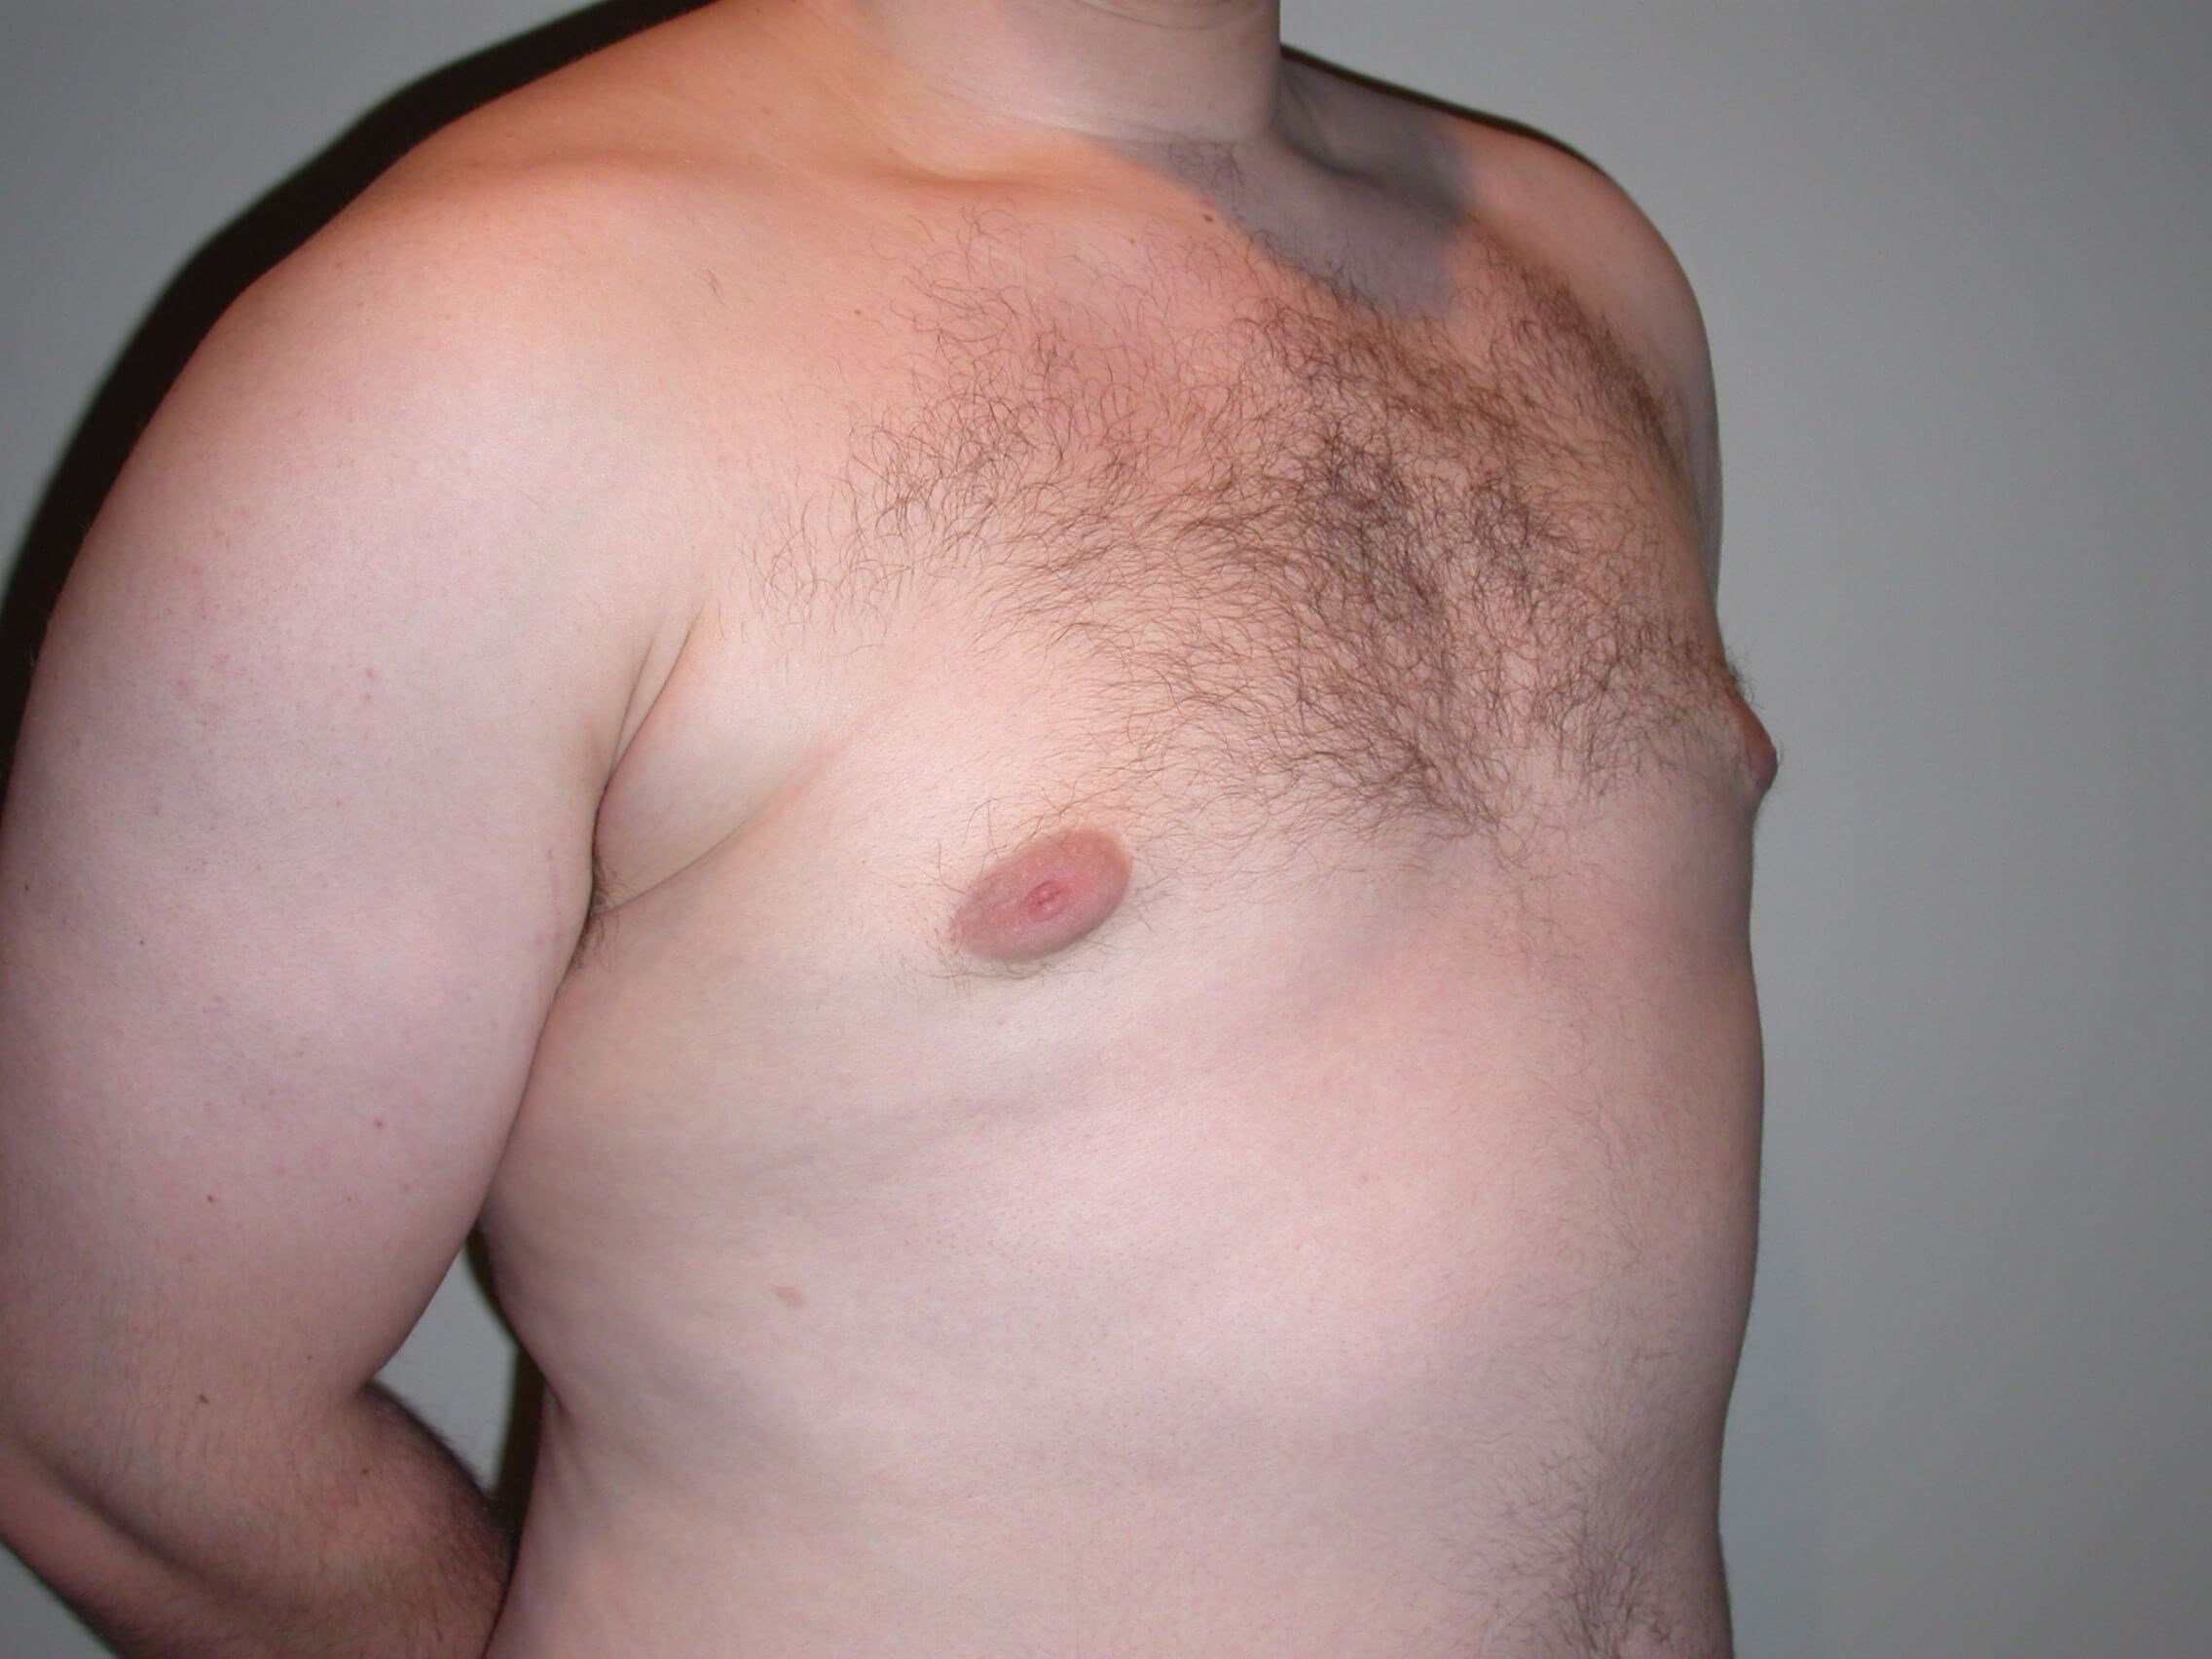 Gynecomastia After, 3 months postop